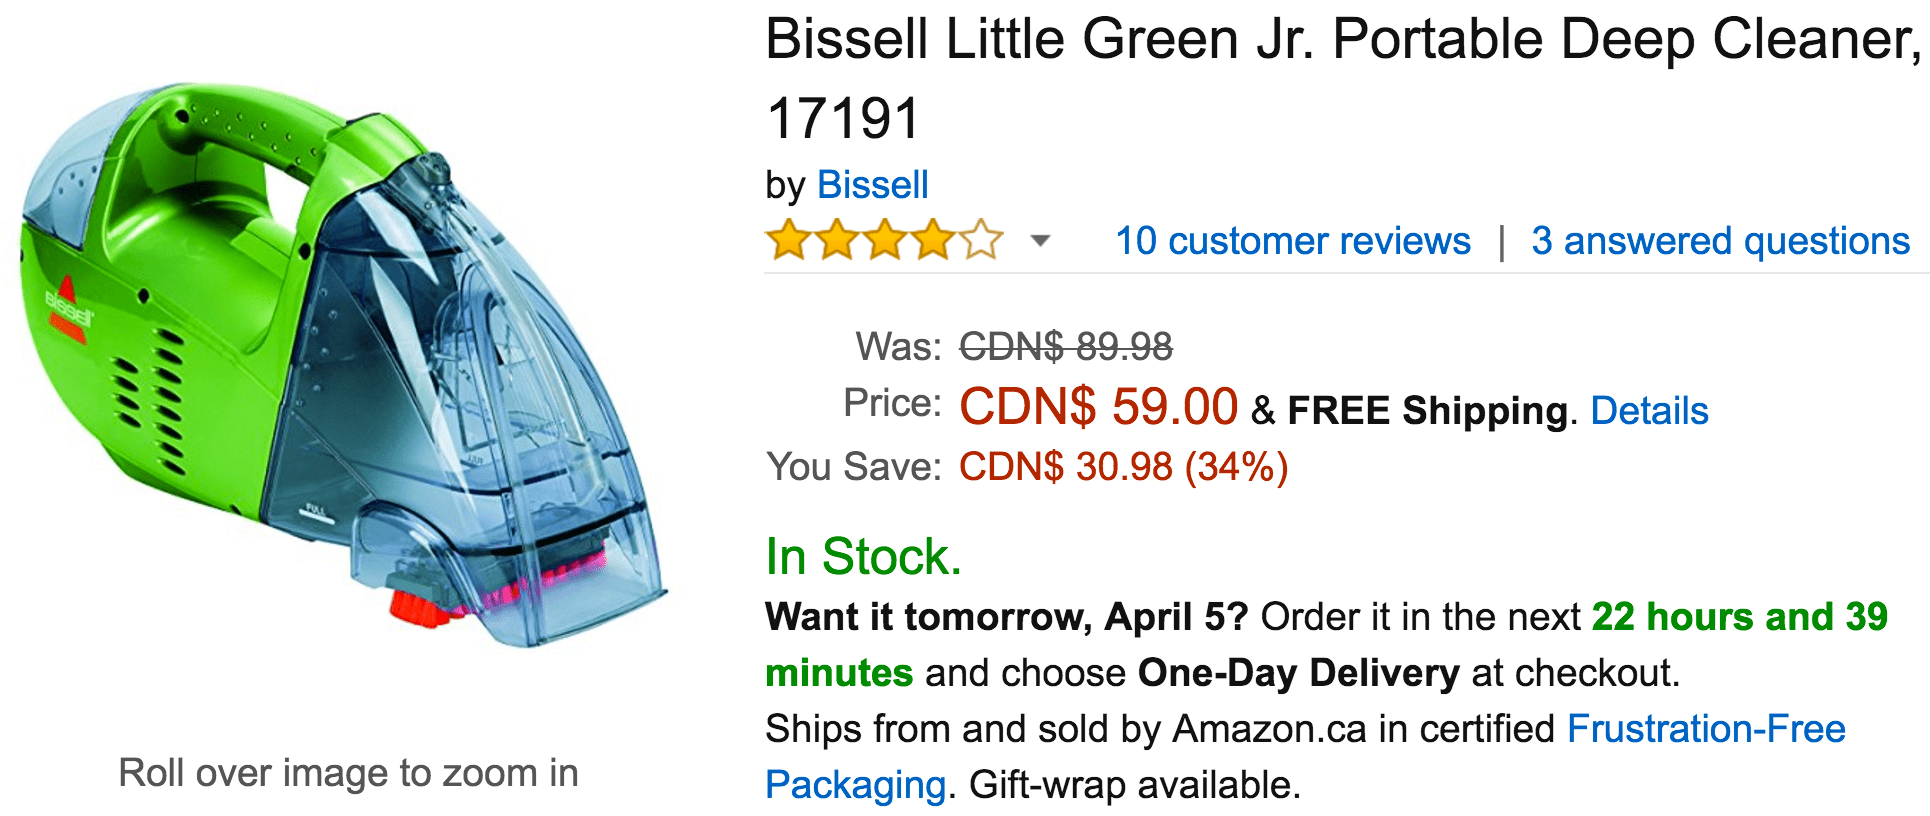 bissell little green jr manual